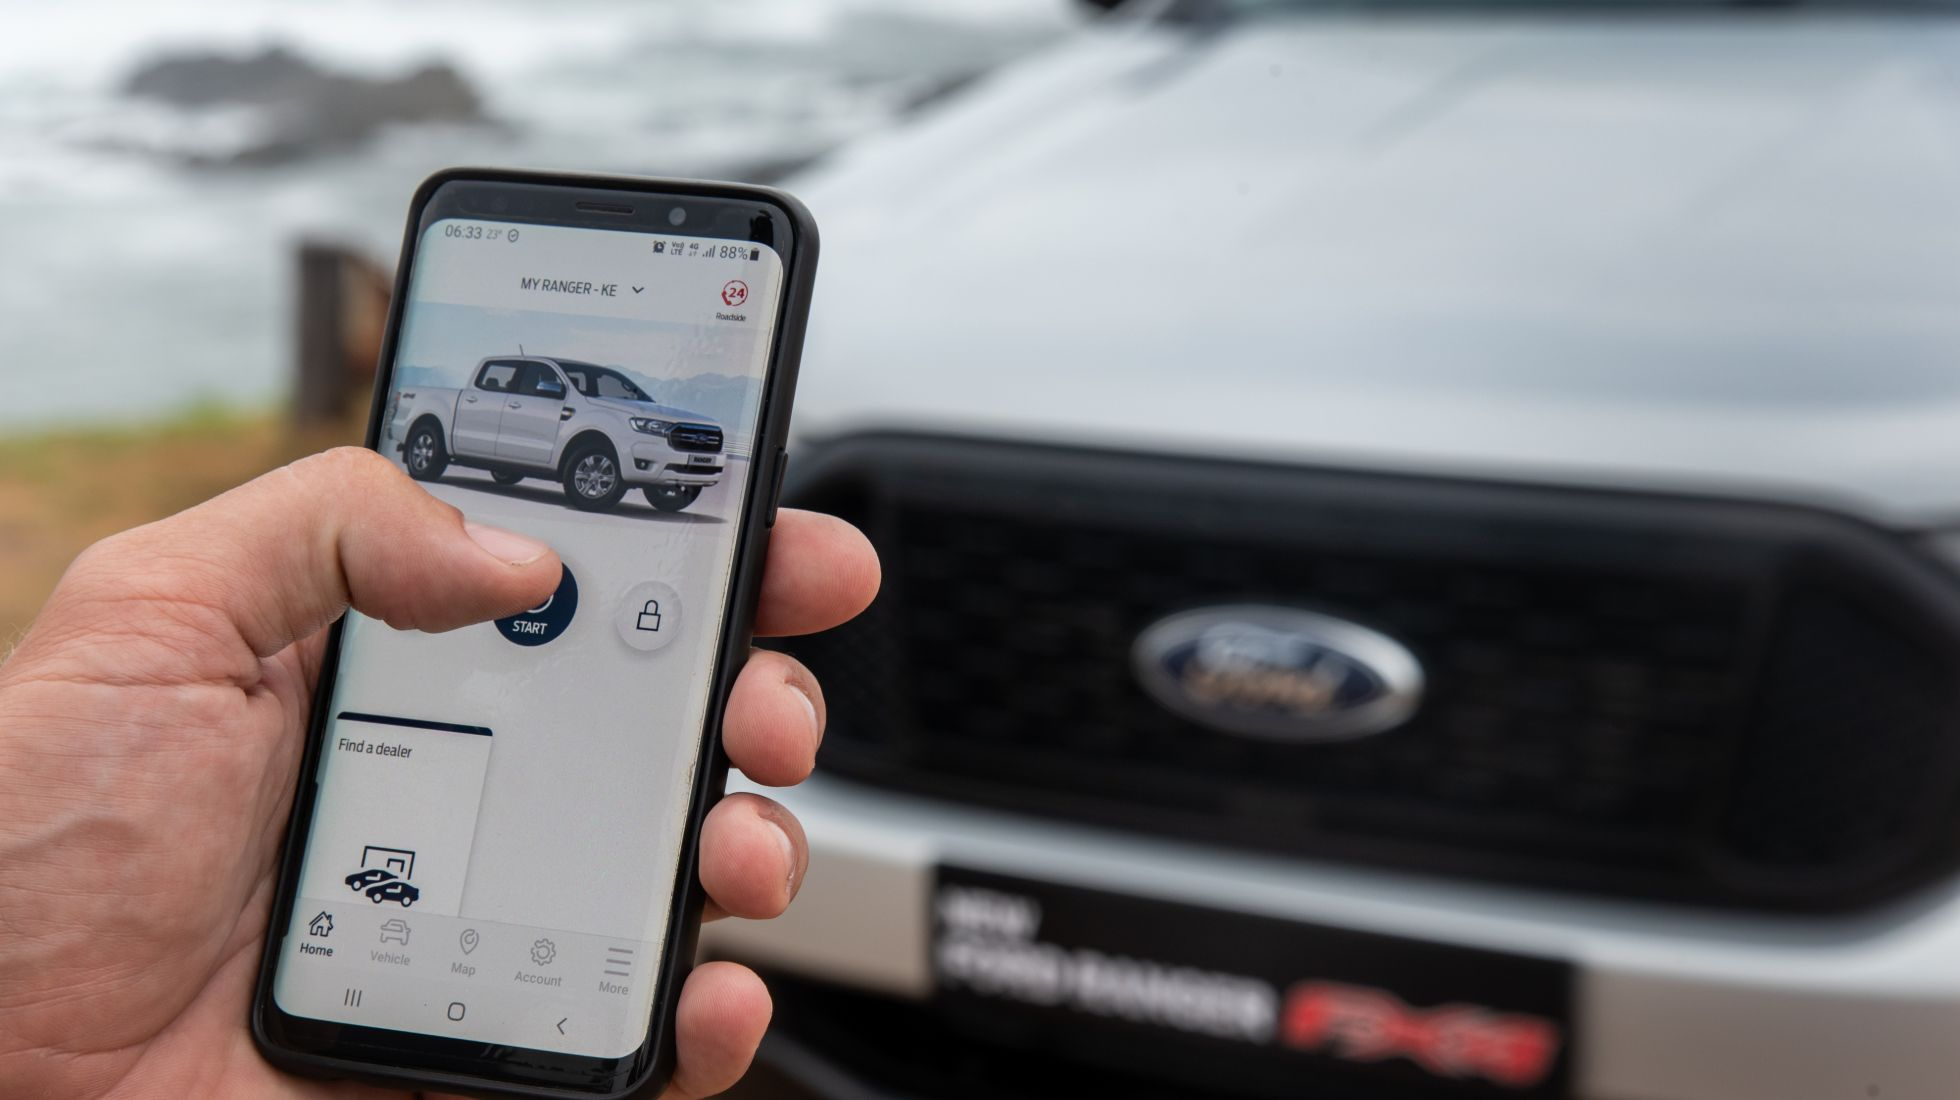 Ford Ranger FX4 introduces new Connected Vehicle Tech – Ford Pass